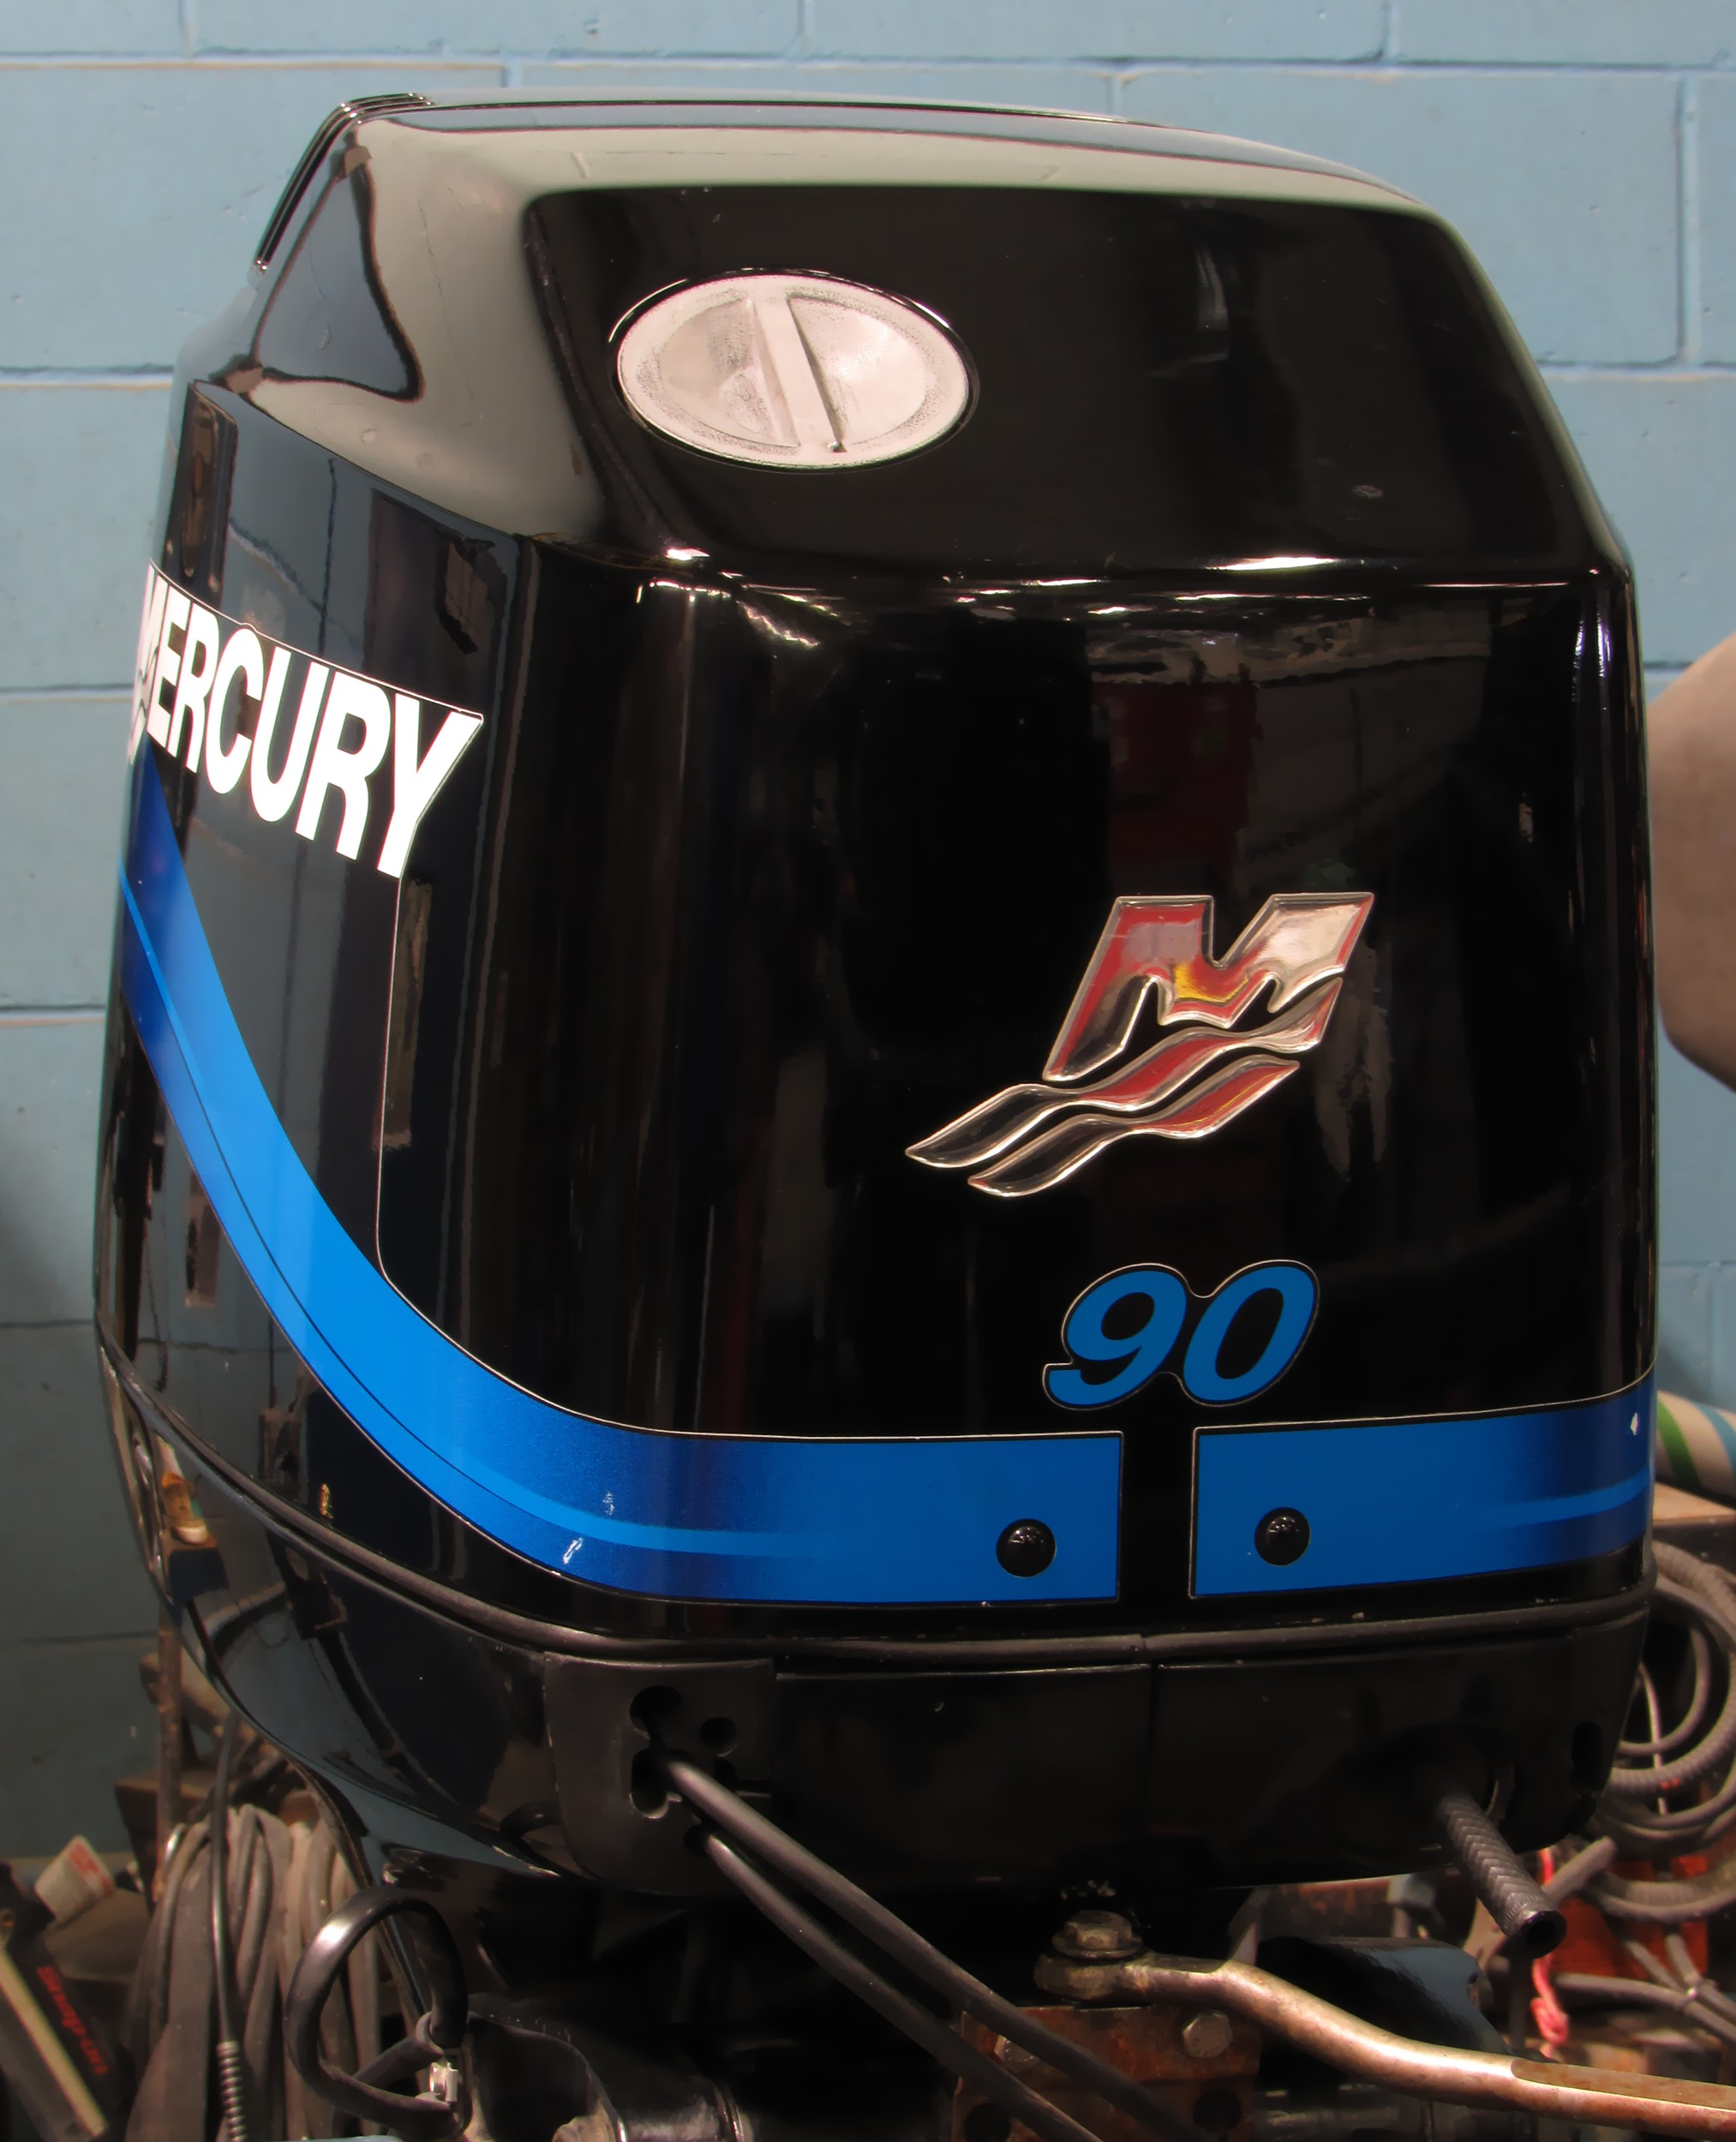 Used 2000 mercury 90elpto 90hp 2 stroke saltwater outboard for Mercury 90 hp outboard motor